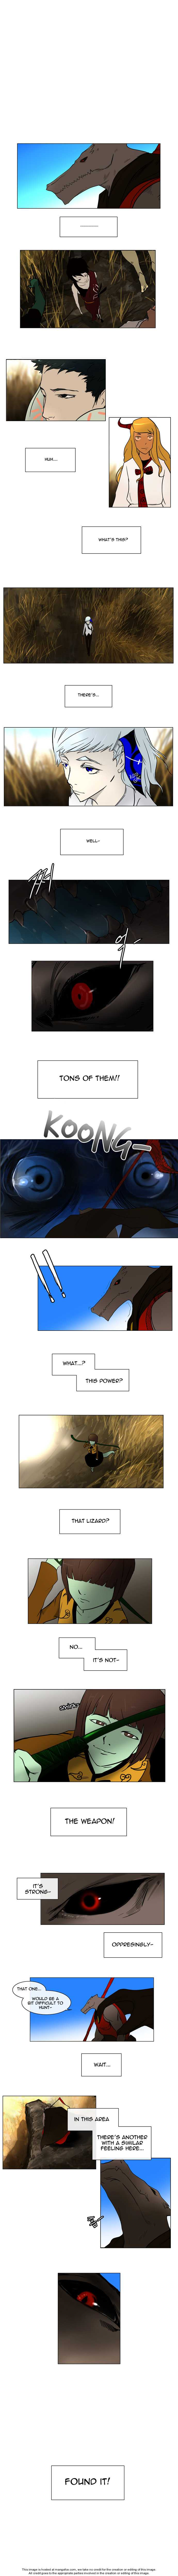 Tower of God 6 Page 3